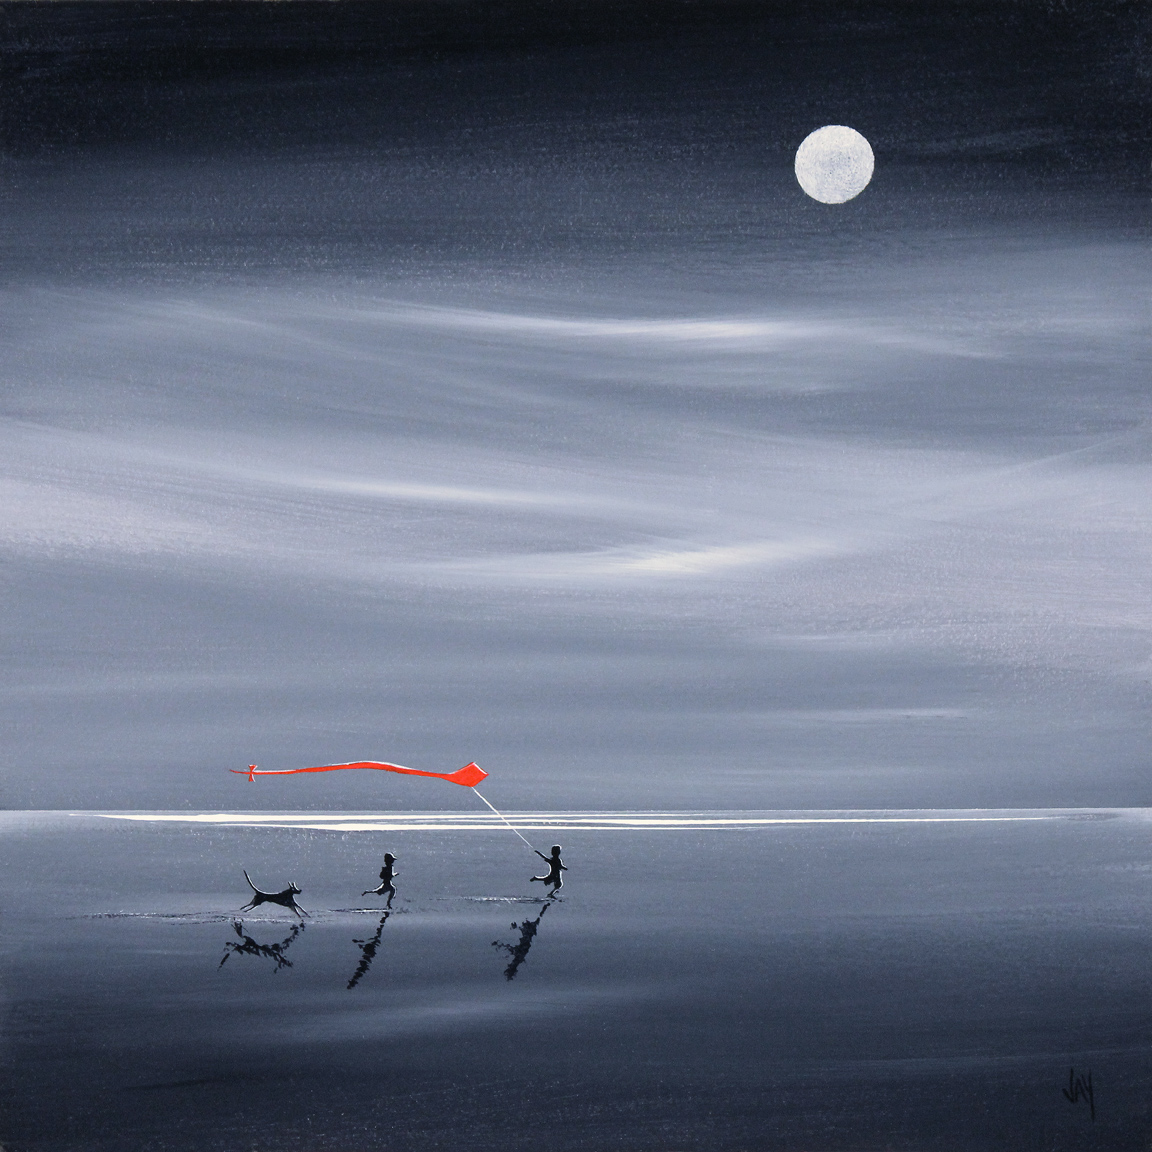 Jay Nottingham, Signed limited edition print, Moonlight Games Click to enlarge